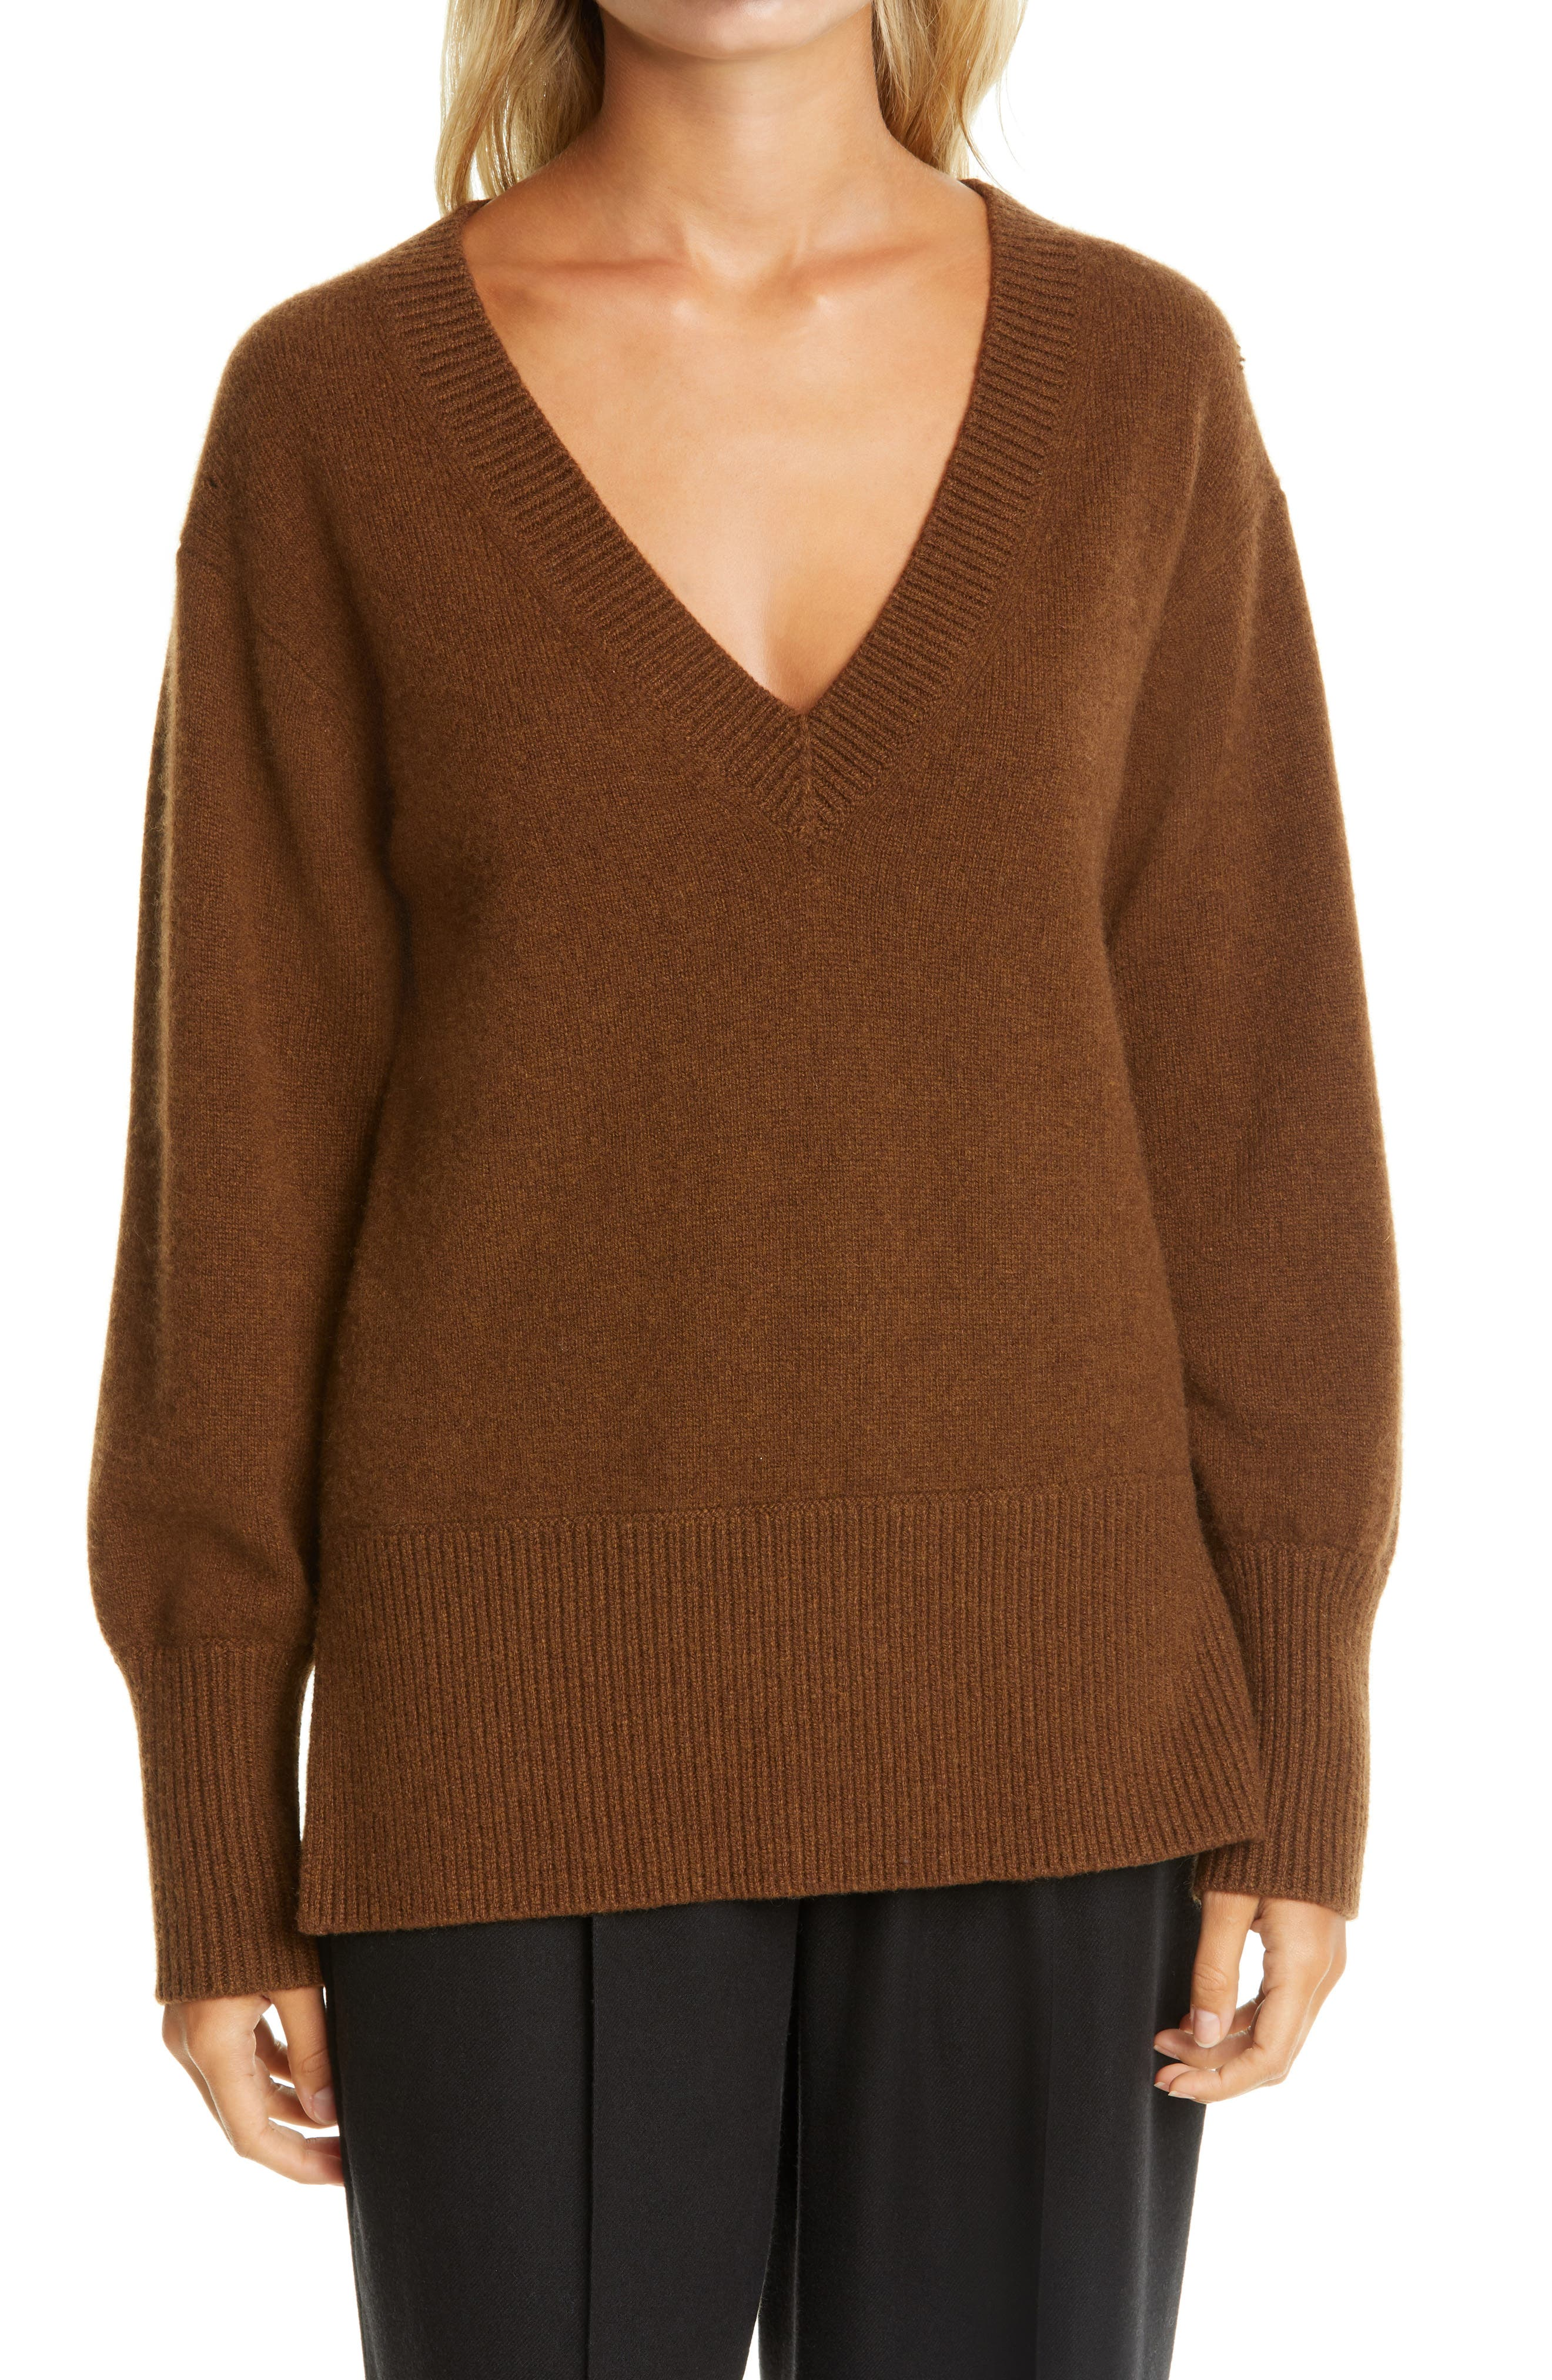 A ribbed V-neck, hem and cuffs trim an oversized cashmere sweater with a split hem for easy movement. Style Name: Vince Ribbed V-Neck Cashmere Tunic Sweater. Style Number: 6055826. Available in stores.